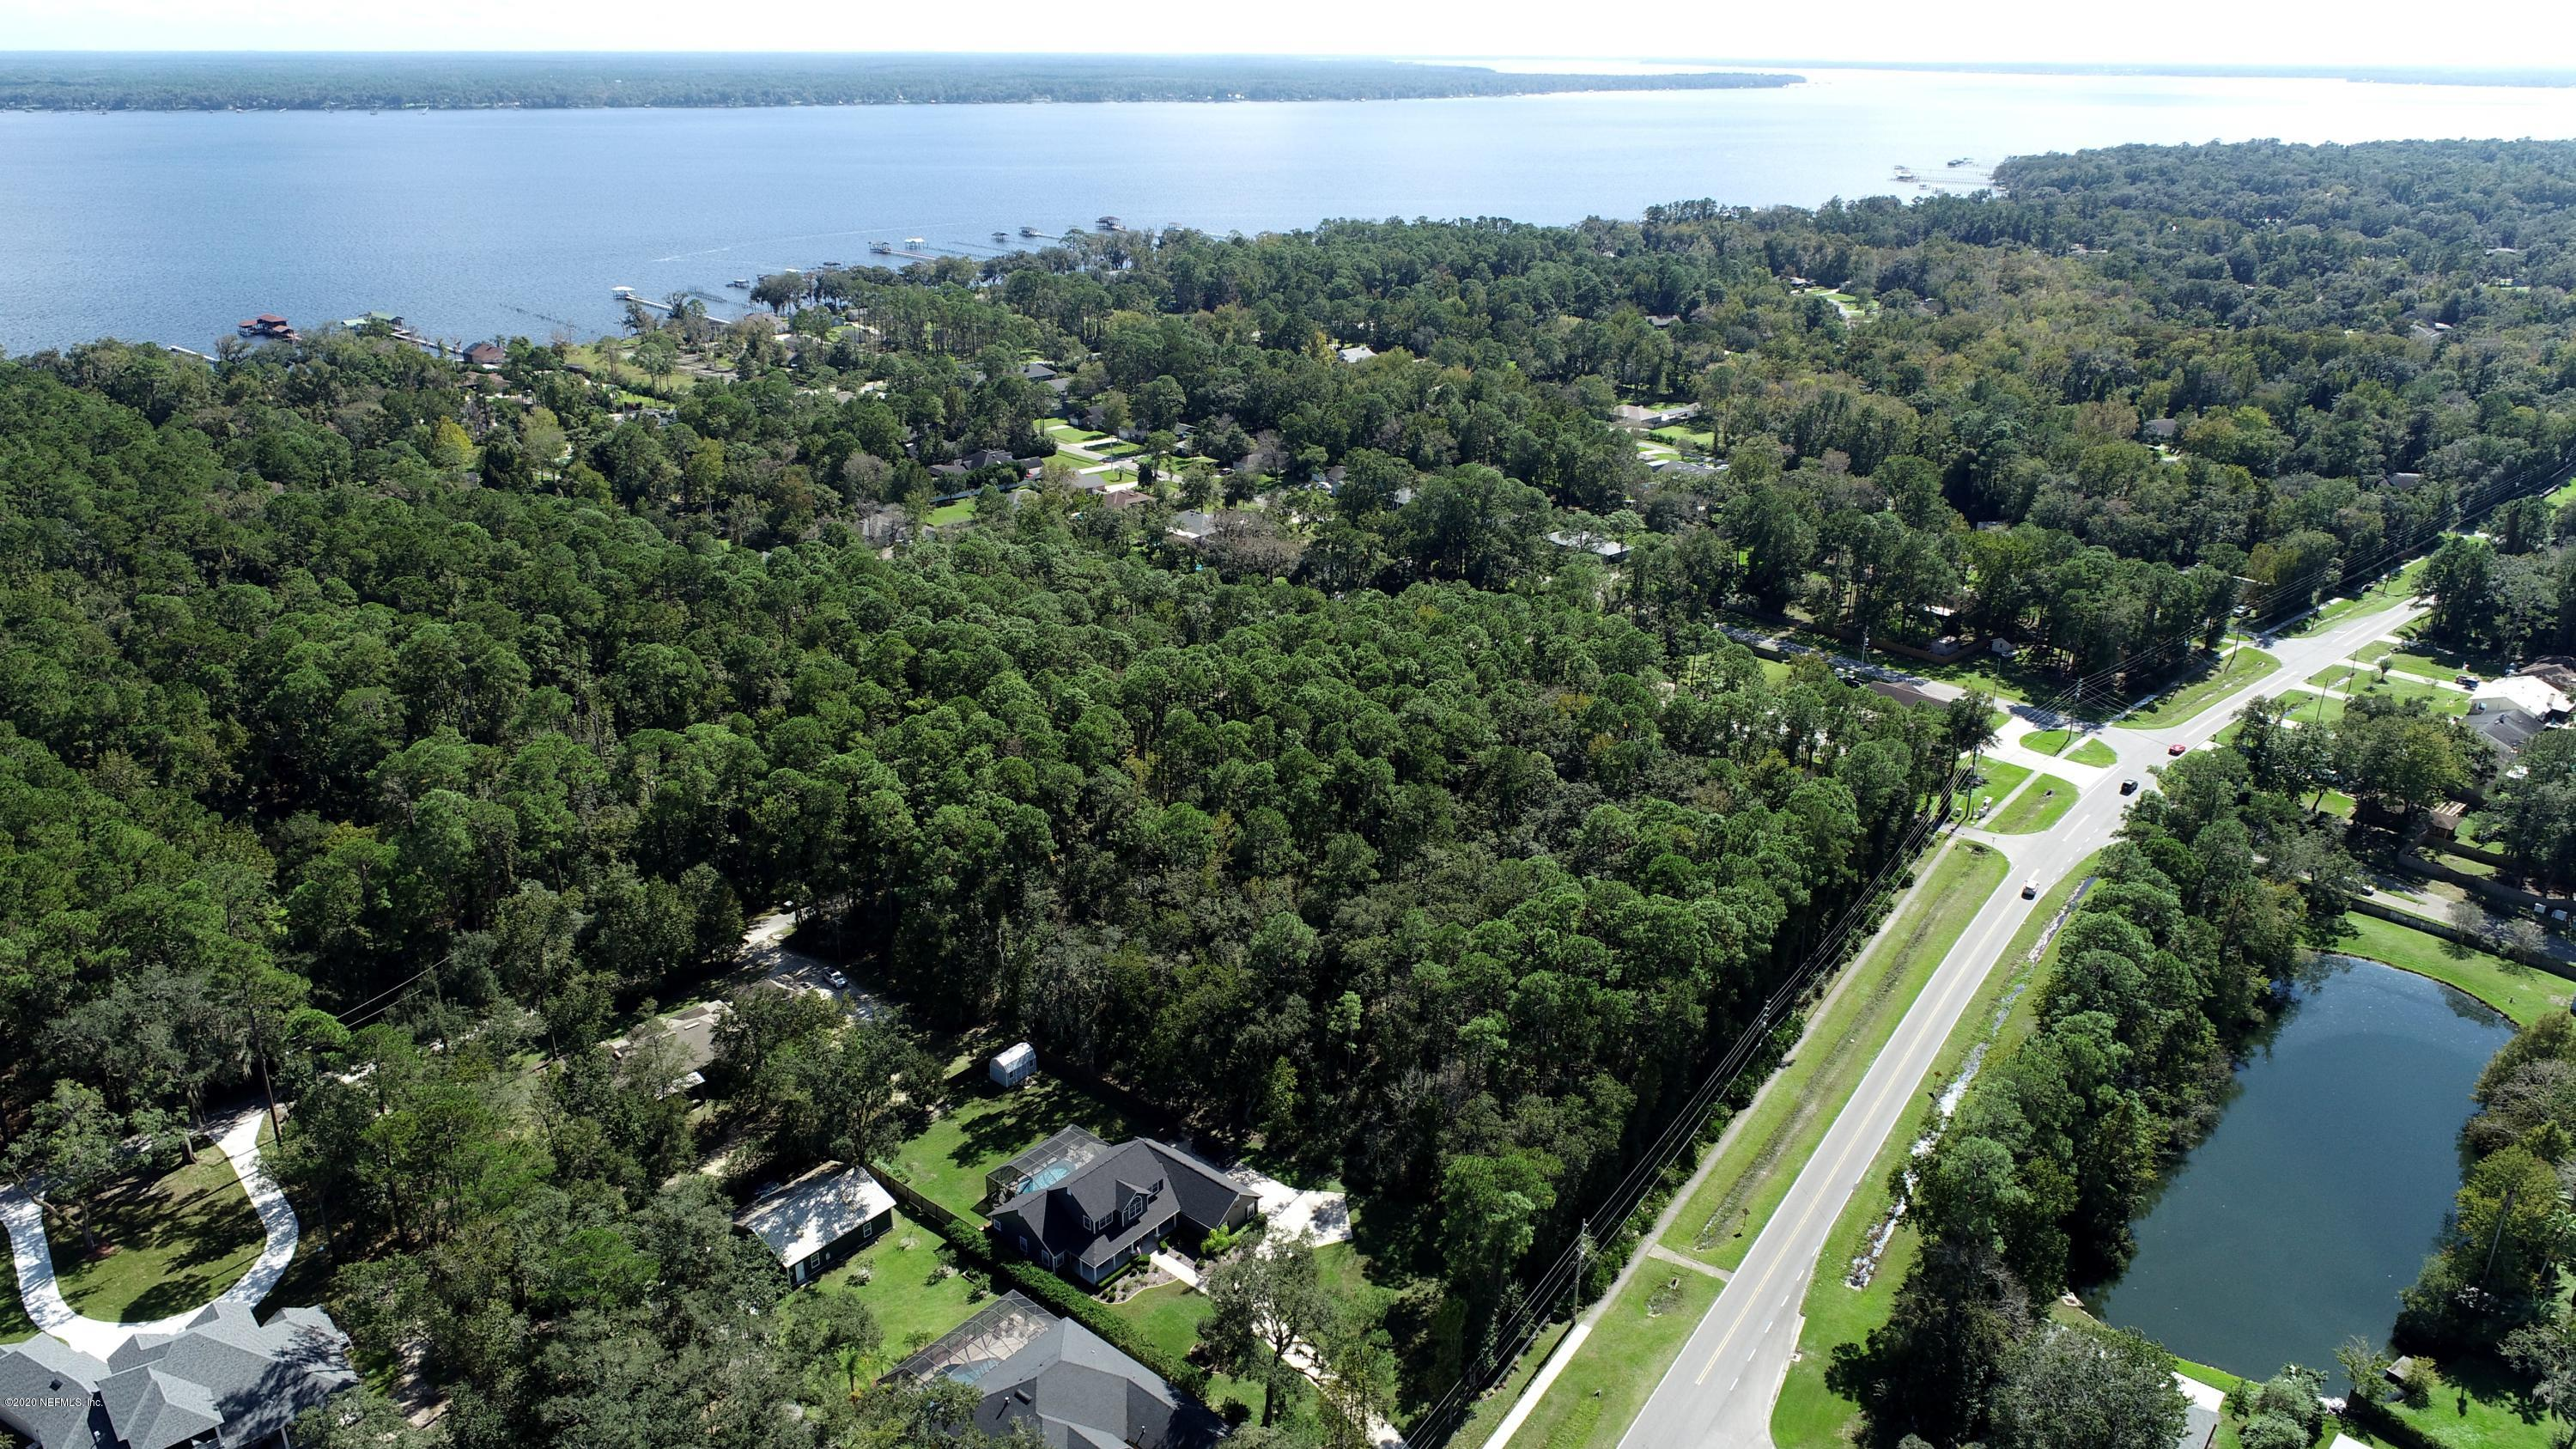 0 COUNTY ROAD 15A, FLEMING ISLAND, FLORIDA 32003, ,Vacant land,For sale,COUNTY ROAD 15A,1080509